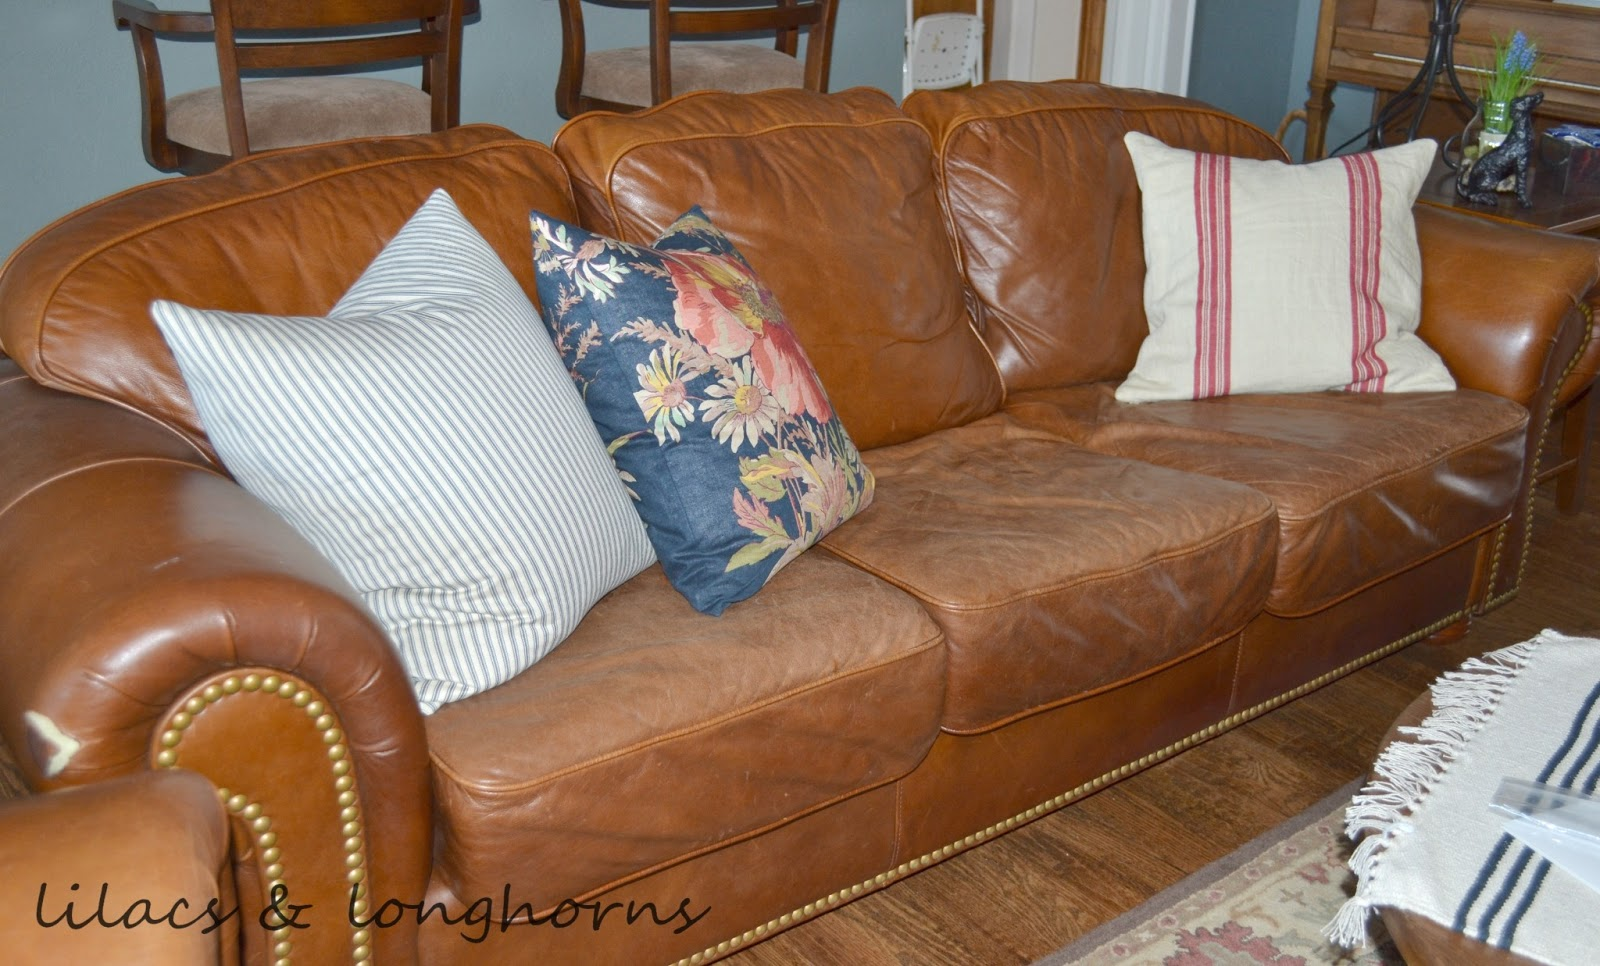 How Do I Repair A Rip In Leather Sofa Usado Olx Goiania To Fix Wear And Tear On Www